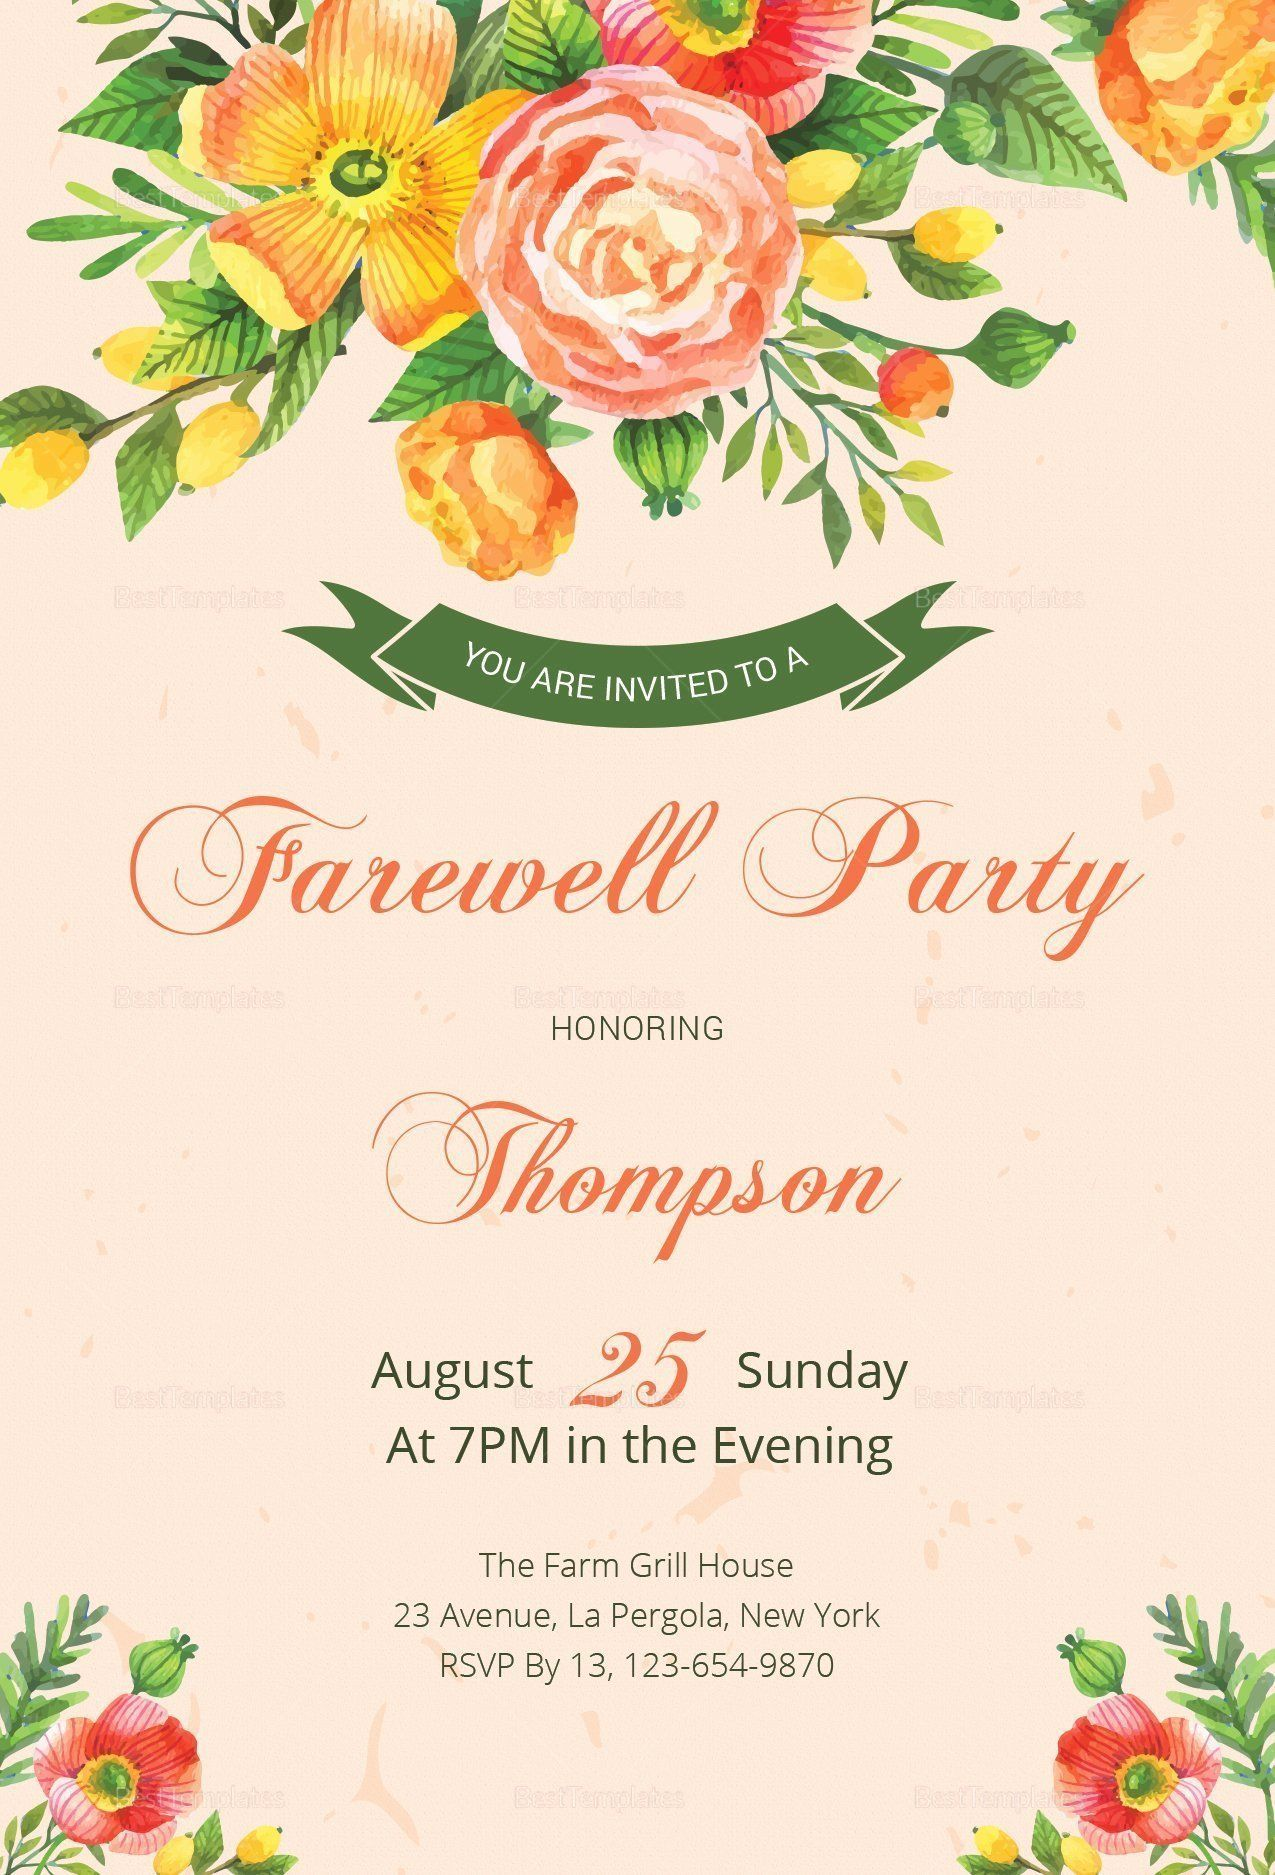 Farewell Party Invitation Template Luxury Floral Farewell Party